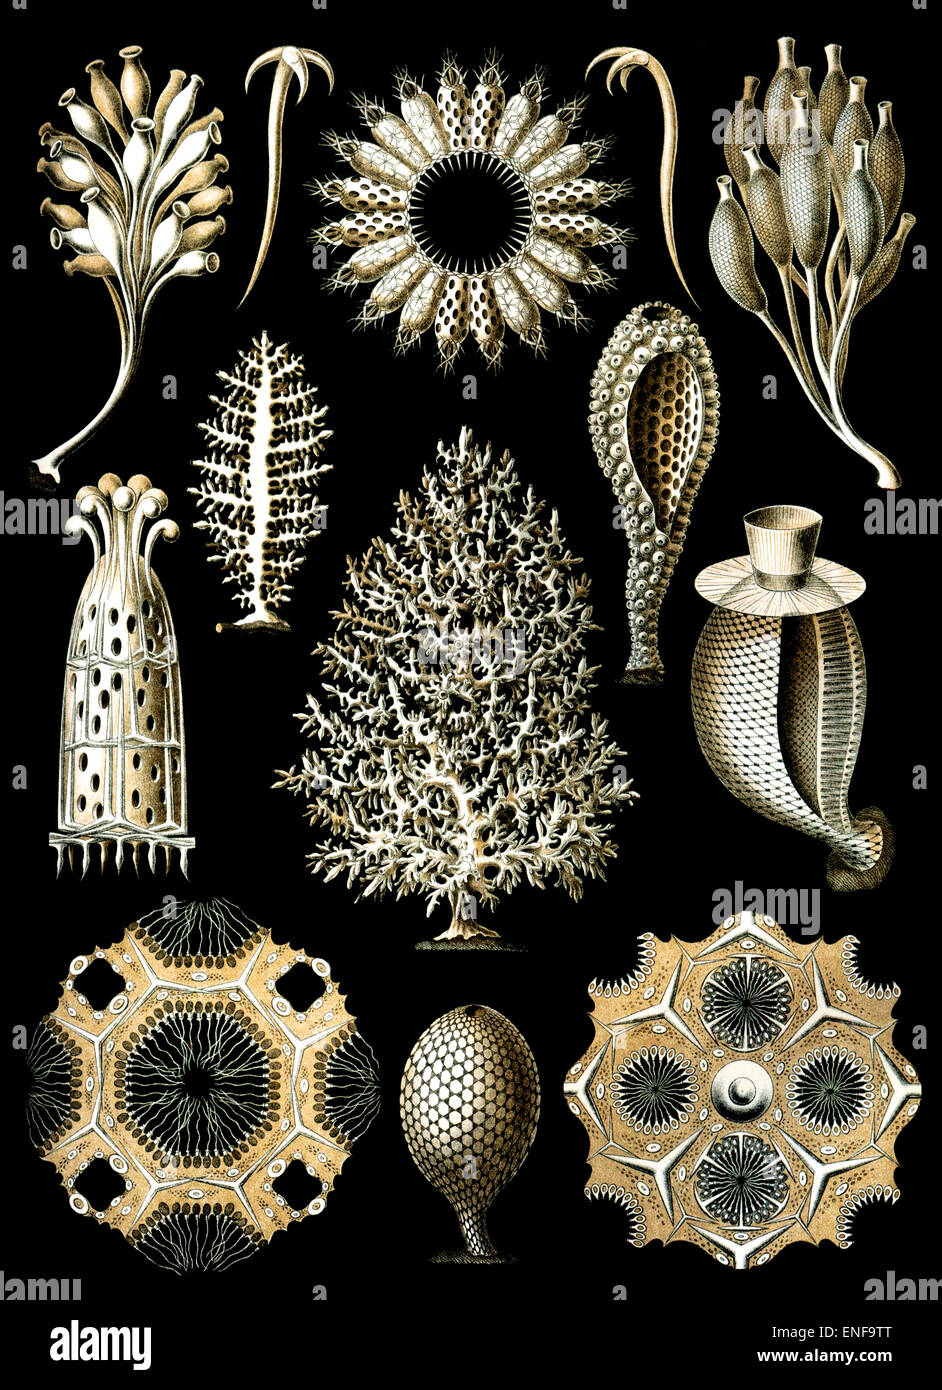 Calcispongiae (Calcareous sponge), by Ernst Haeckel, 1904 - Editorial use only. - Stock Image